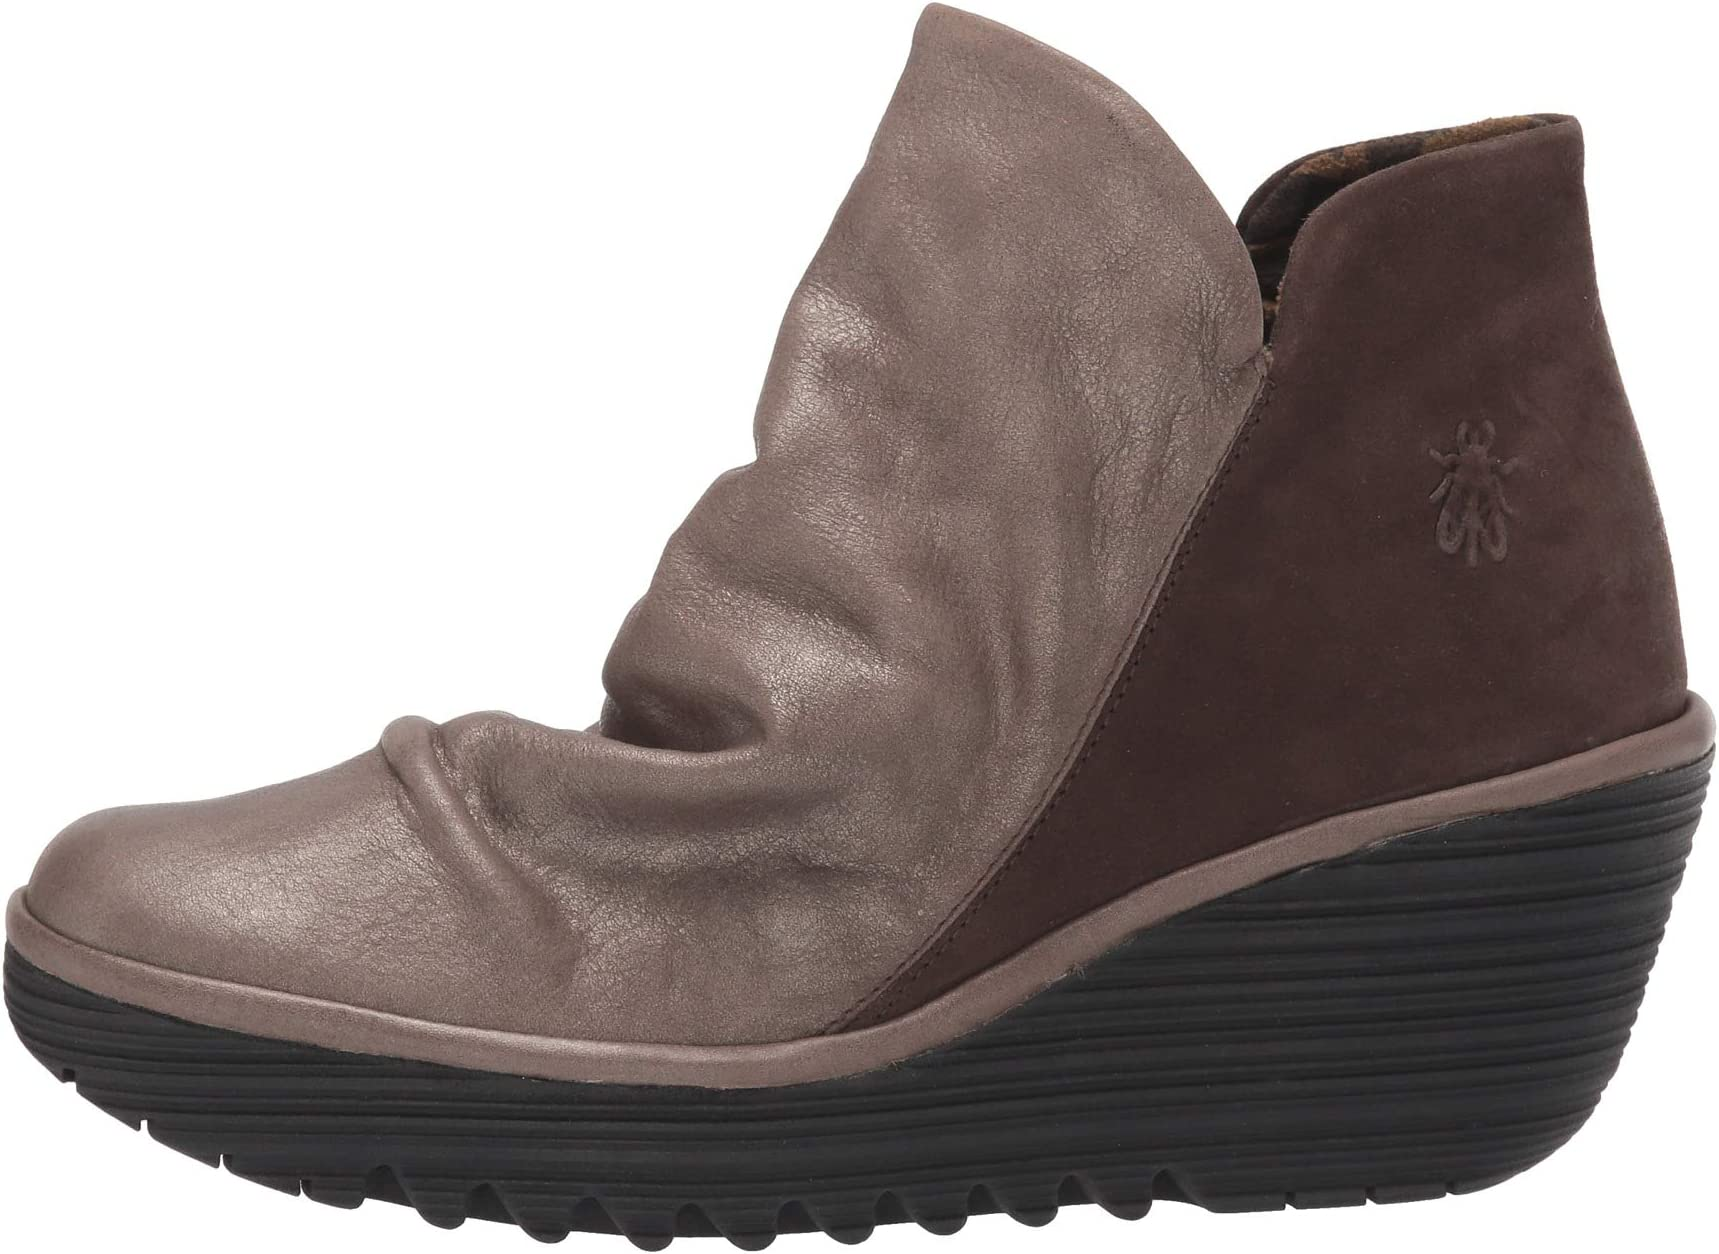 FLY LONDON Yip | Women's shoes | 2020 Newest